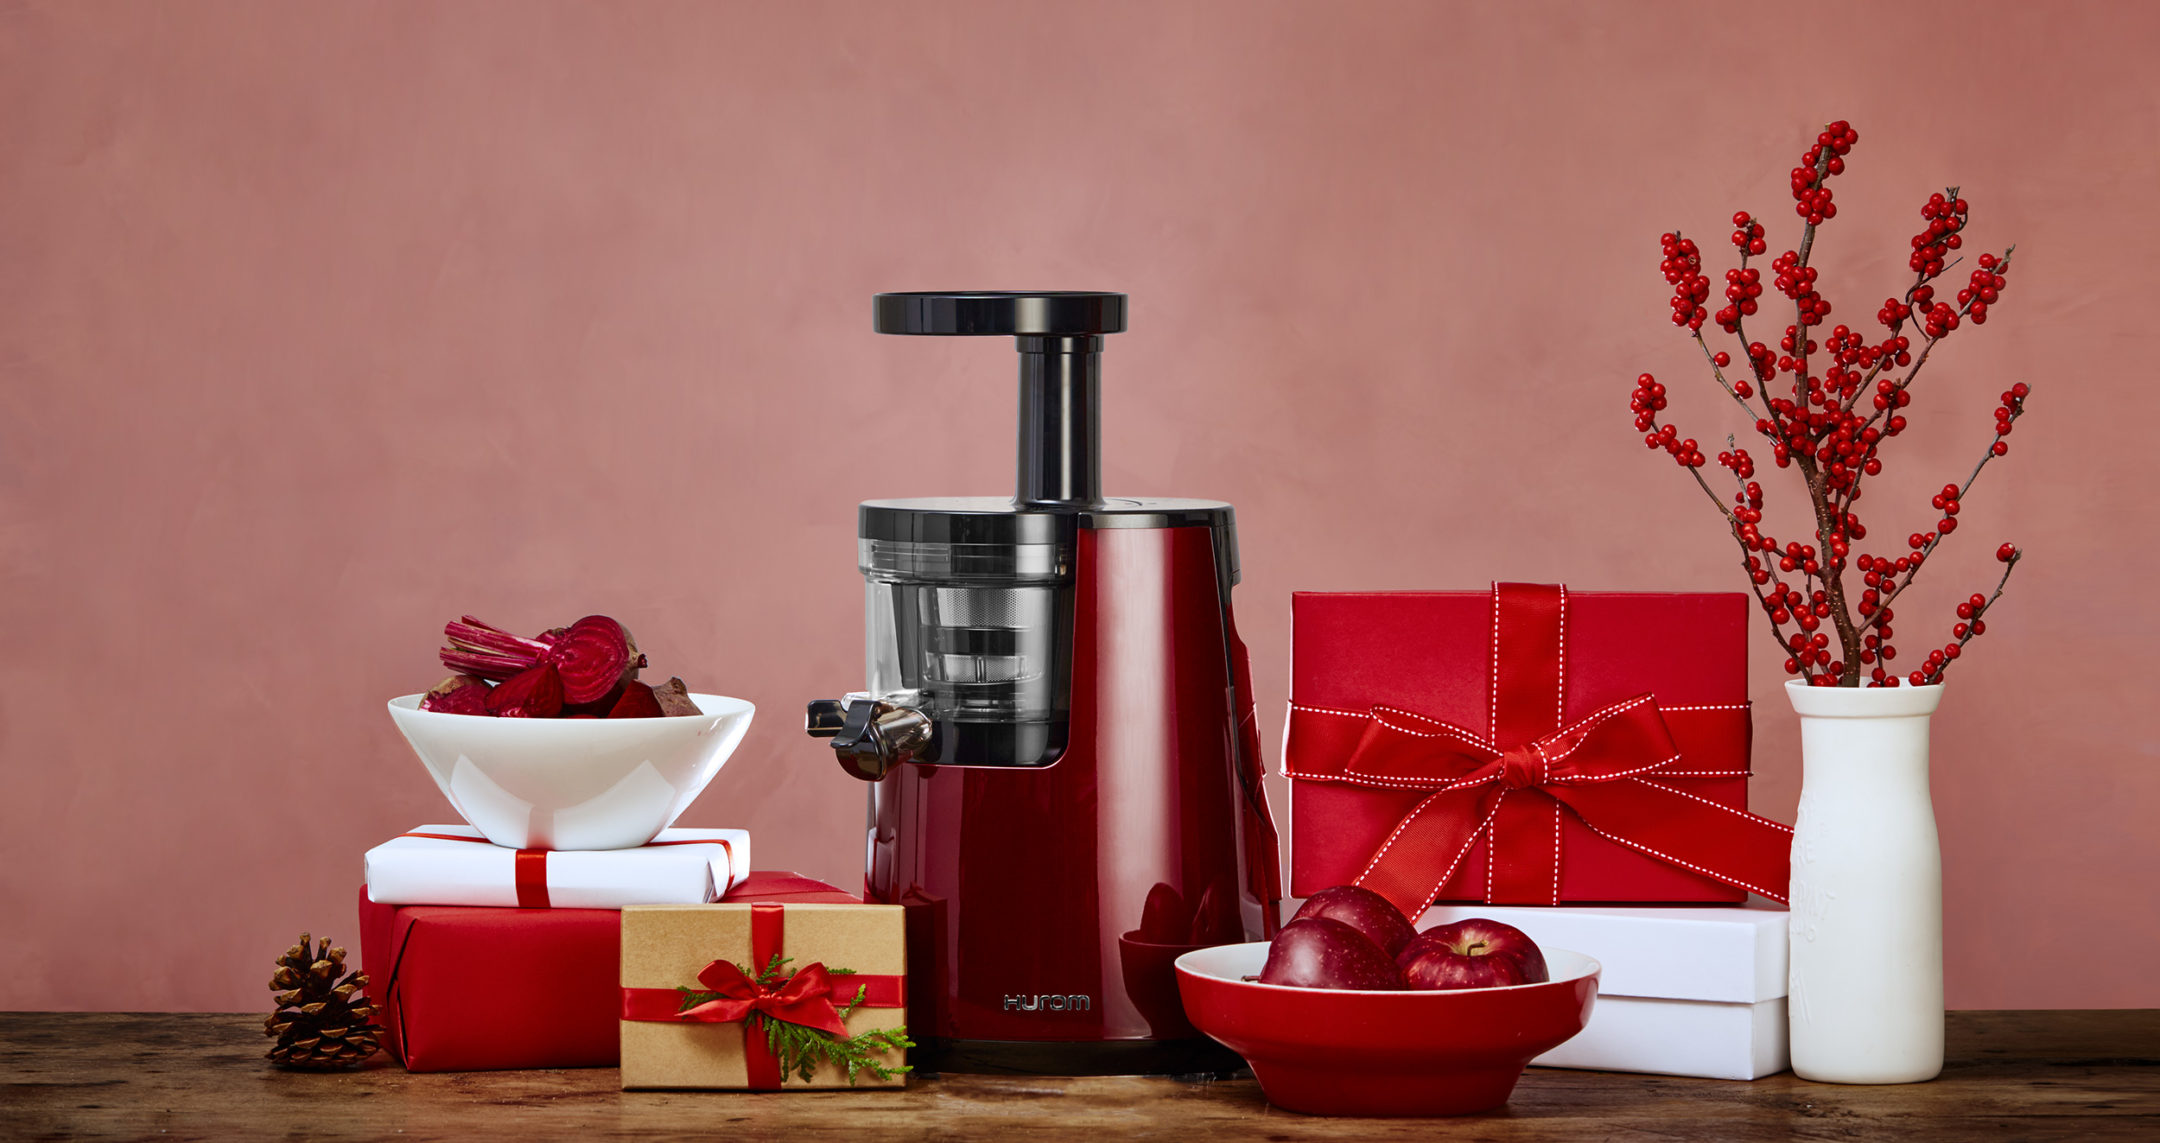 hurom juicer on red background surrounded with gifts